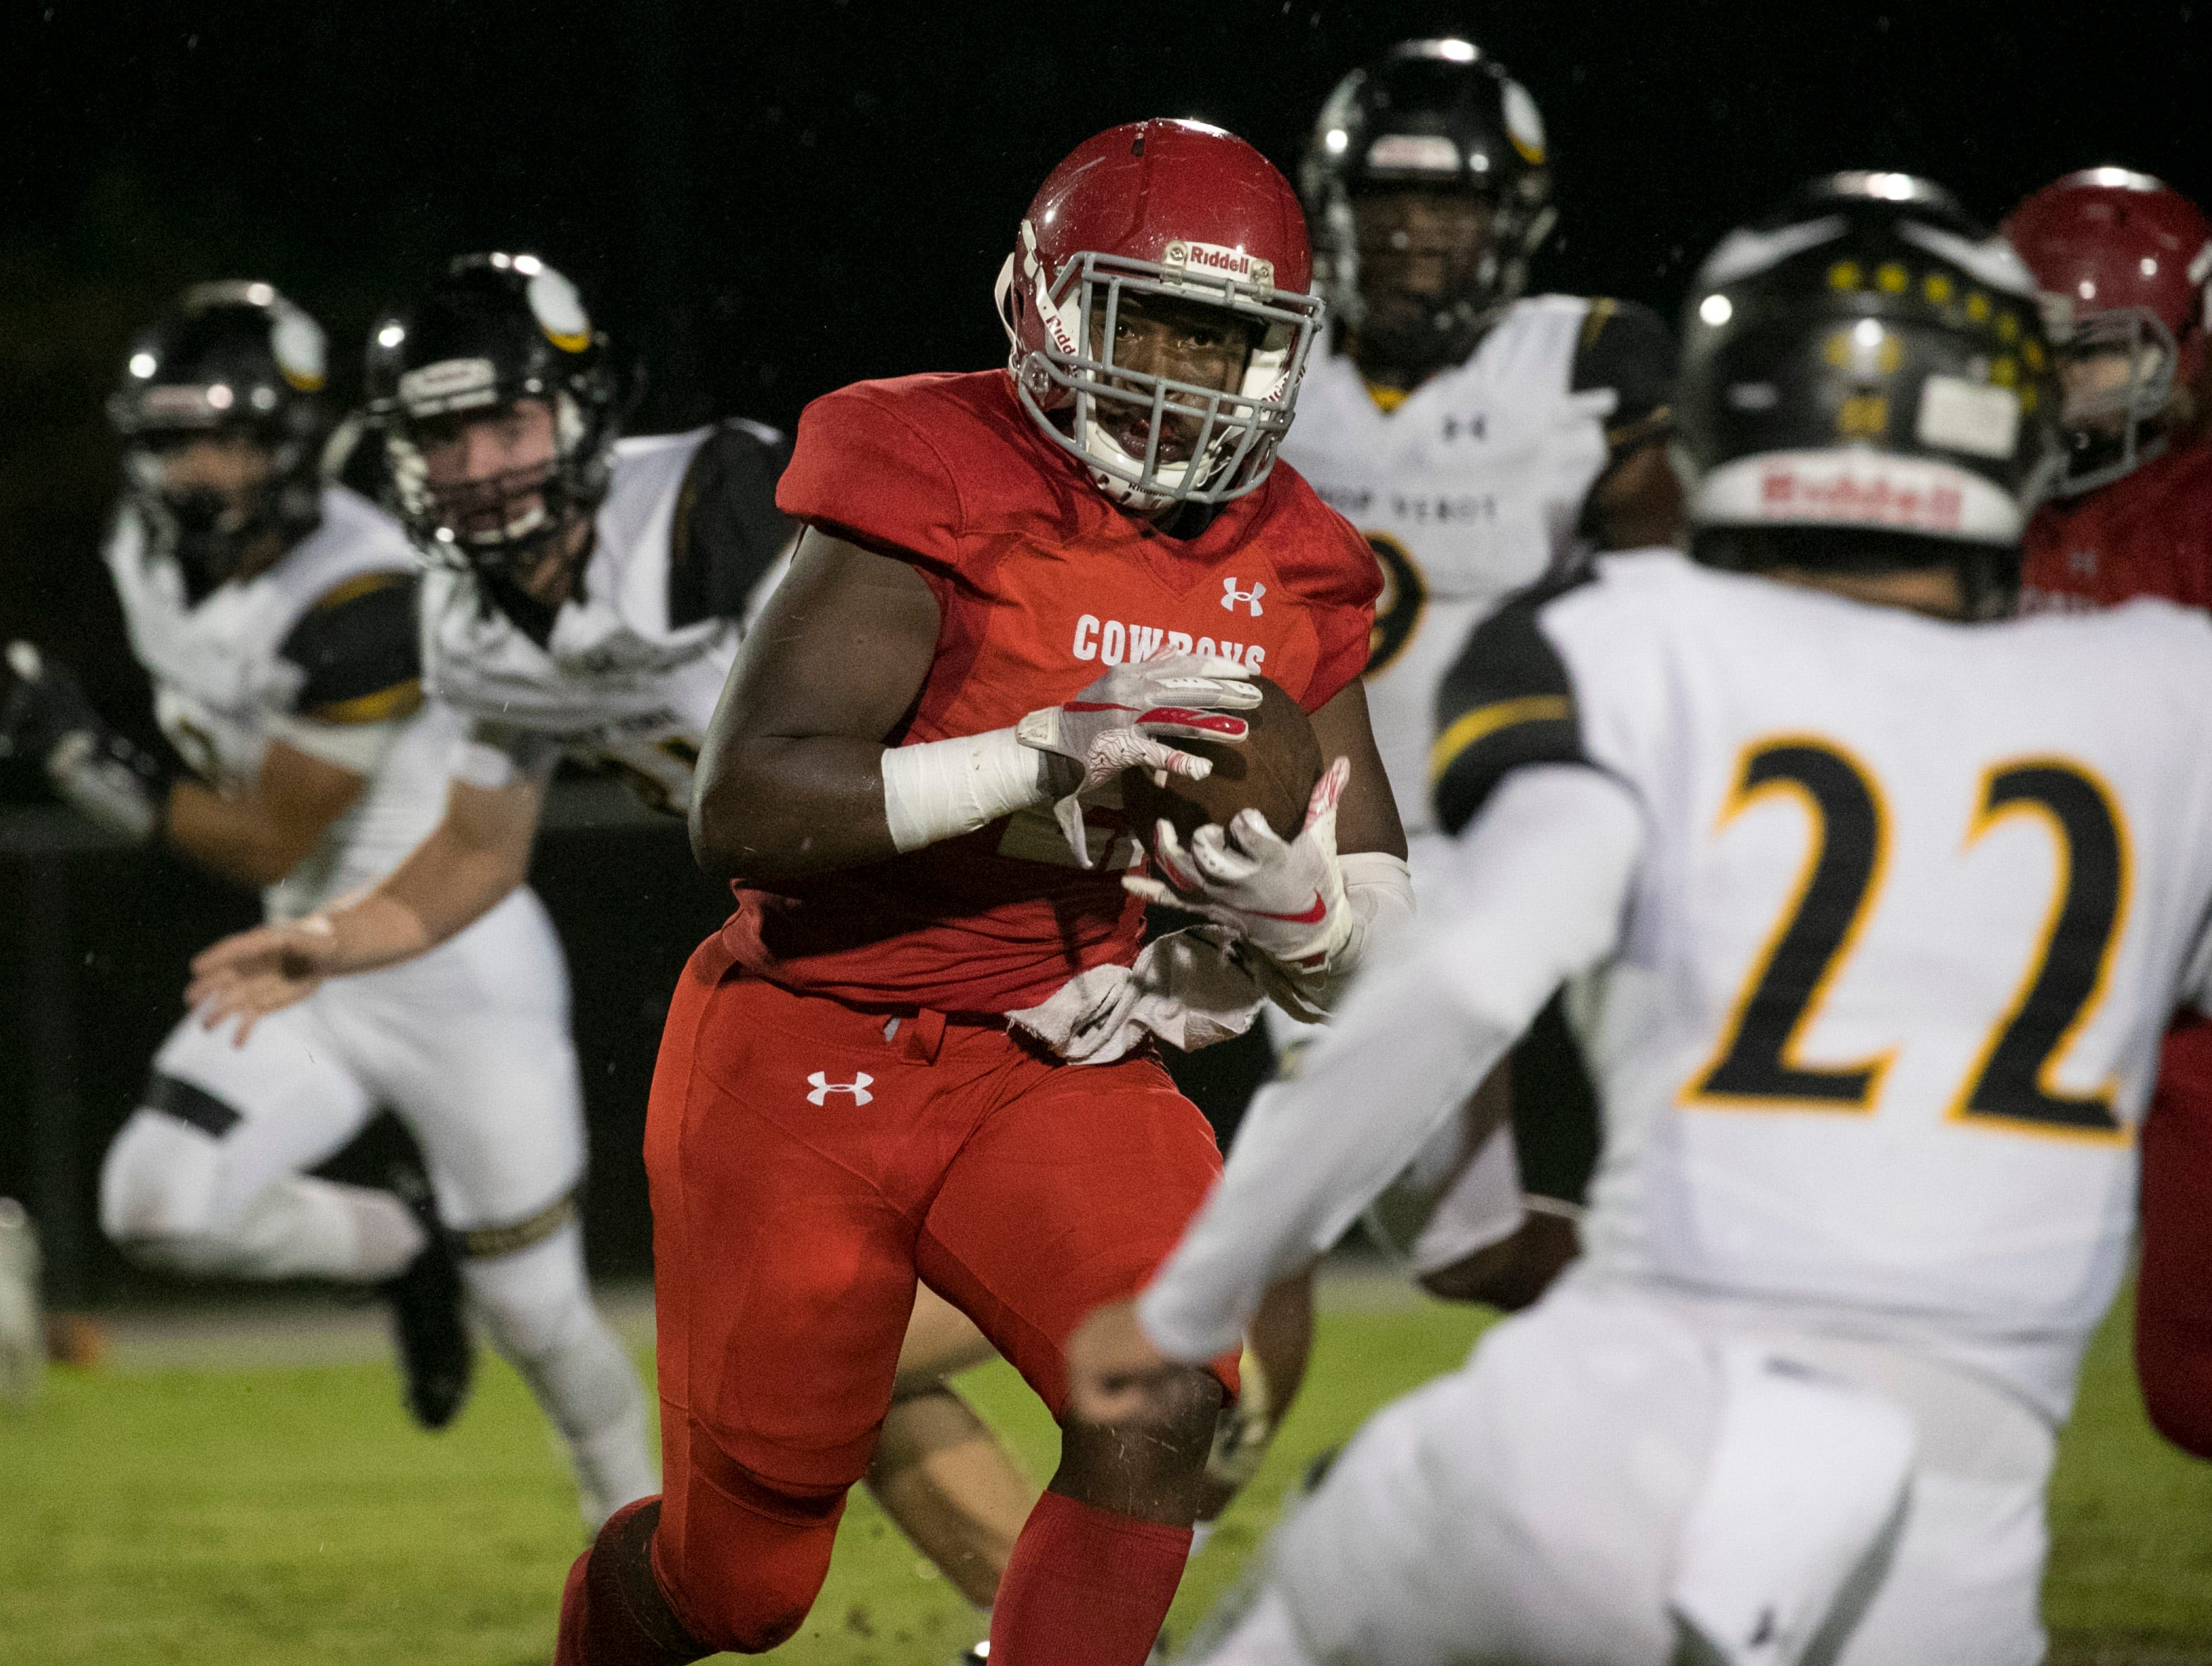 Maynard Blackmon of LaBelle runs the ball in the first quarter against Bishop Verot on Friday, Sept. 21, 2018, at LaBelle High School.